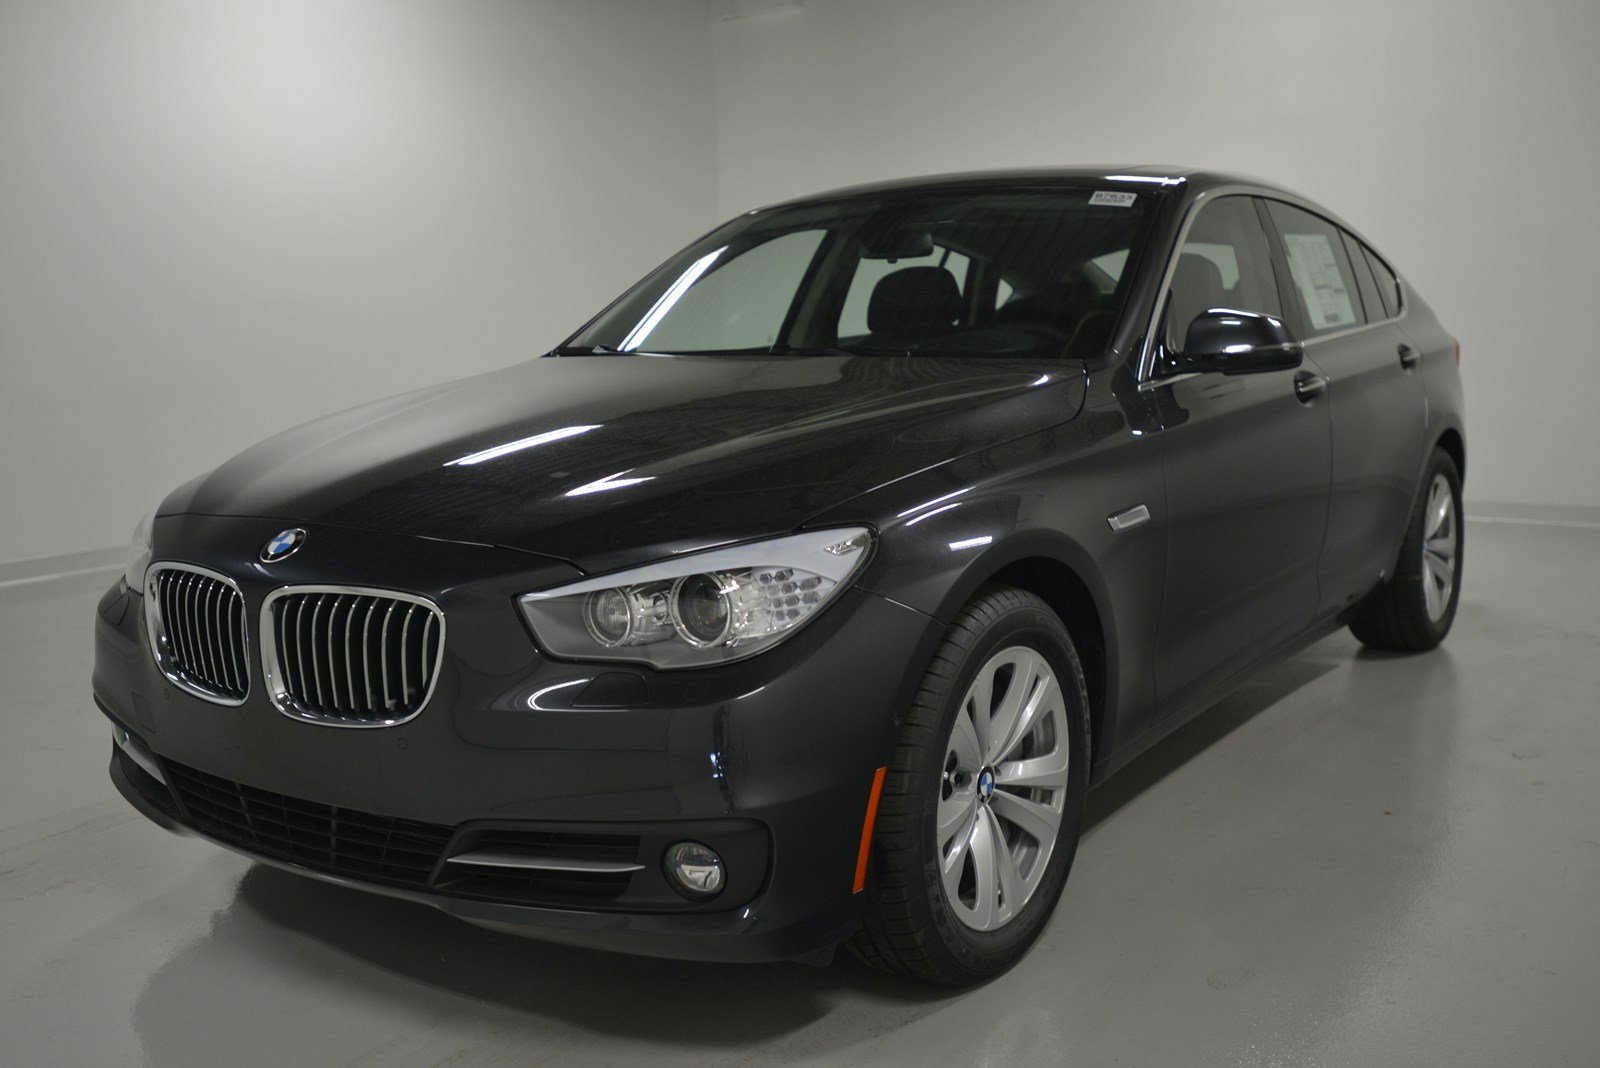 pre owned 2017 bmw 5 series 535i xdrive hatchback in elmhurst b7633 elmhurst bmw. Black Bedroom Furniture Sets. Home Design Ideas